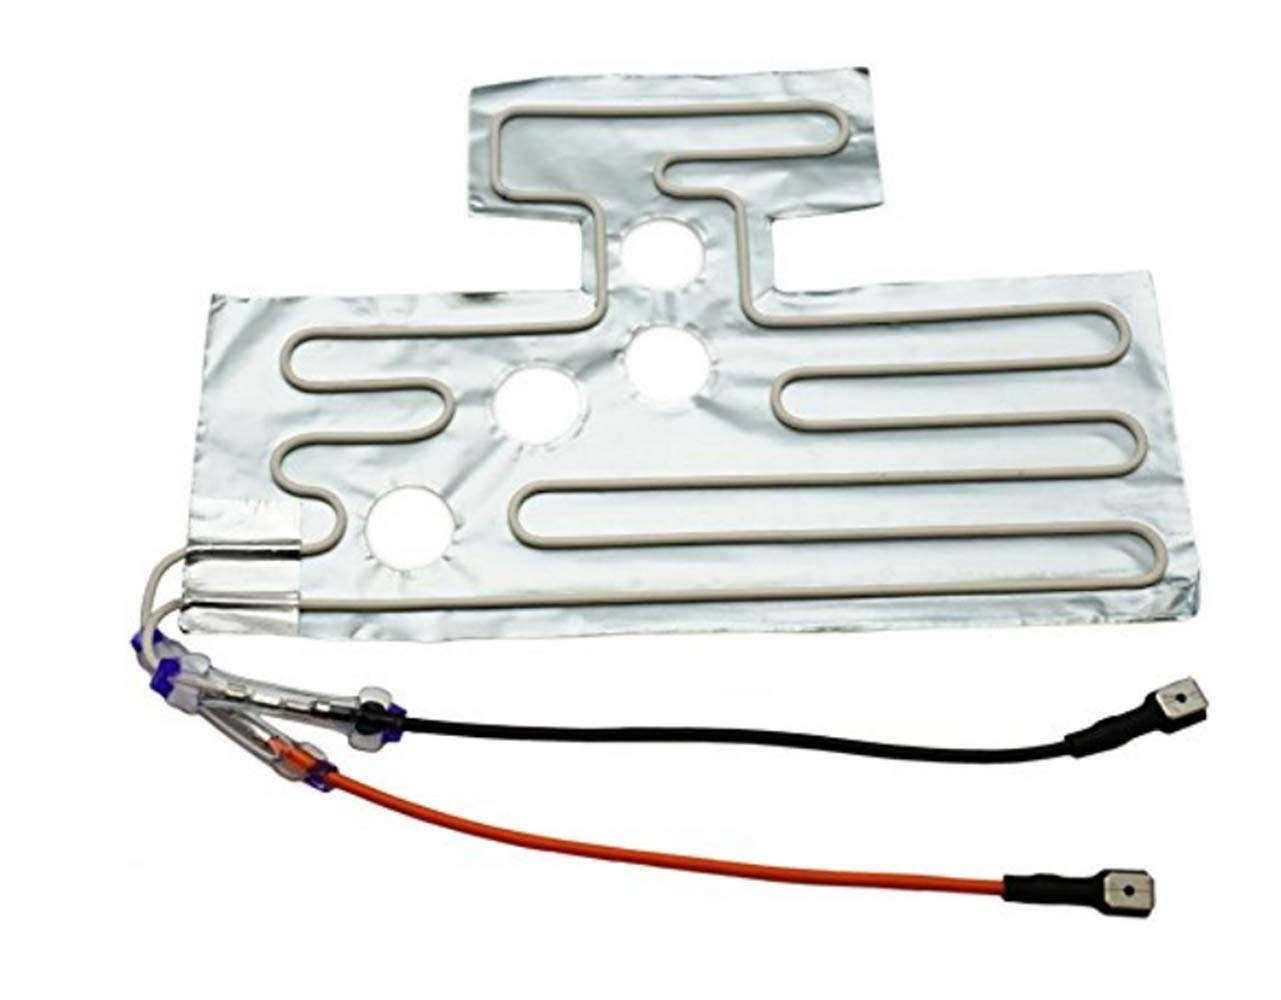 Refrigerator Garage Heater Kit for Frigidaire Kenmore Refrigerator 5303918301 AP3722172 PS900213 AH900213